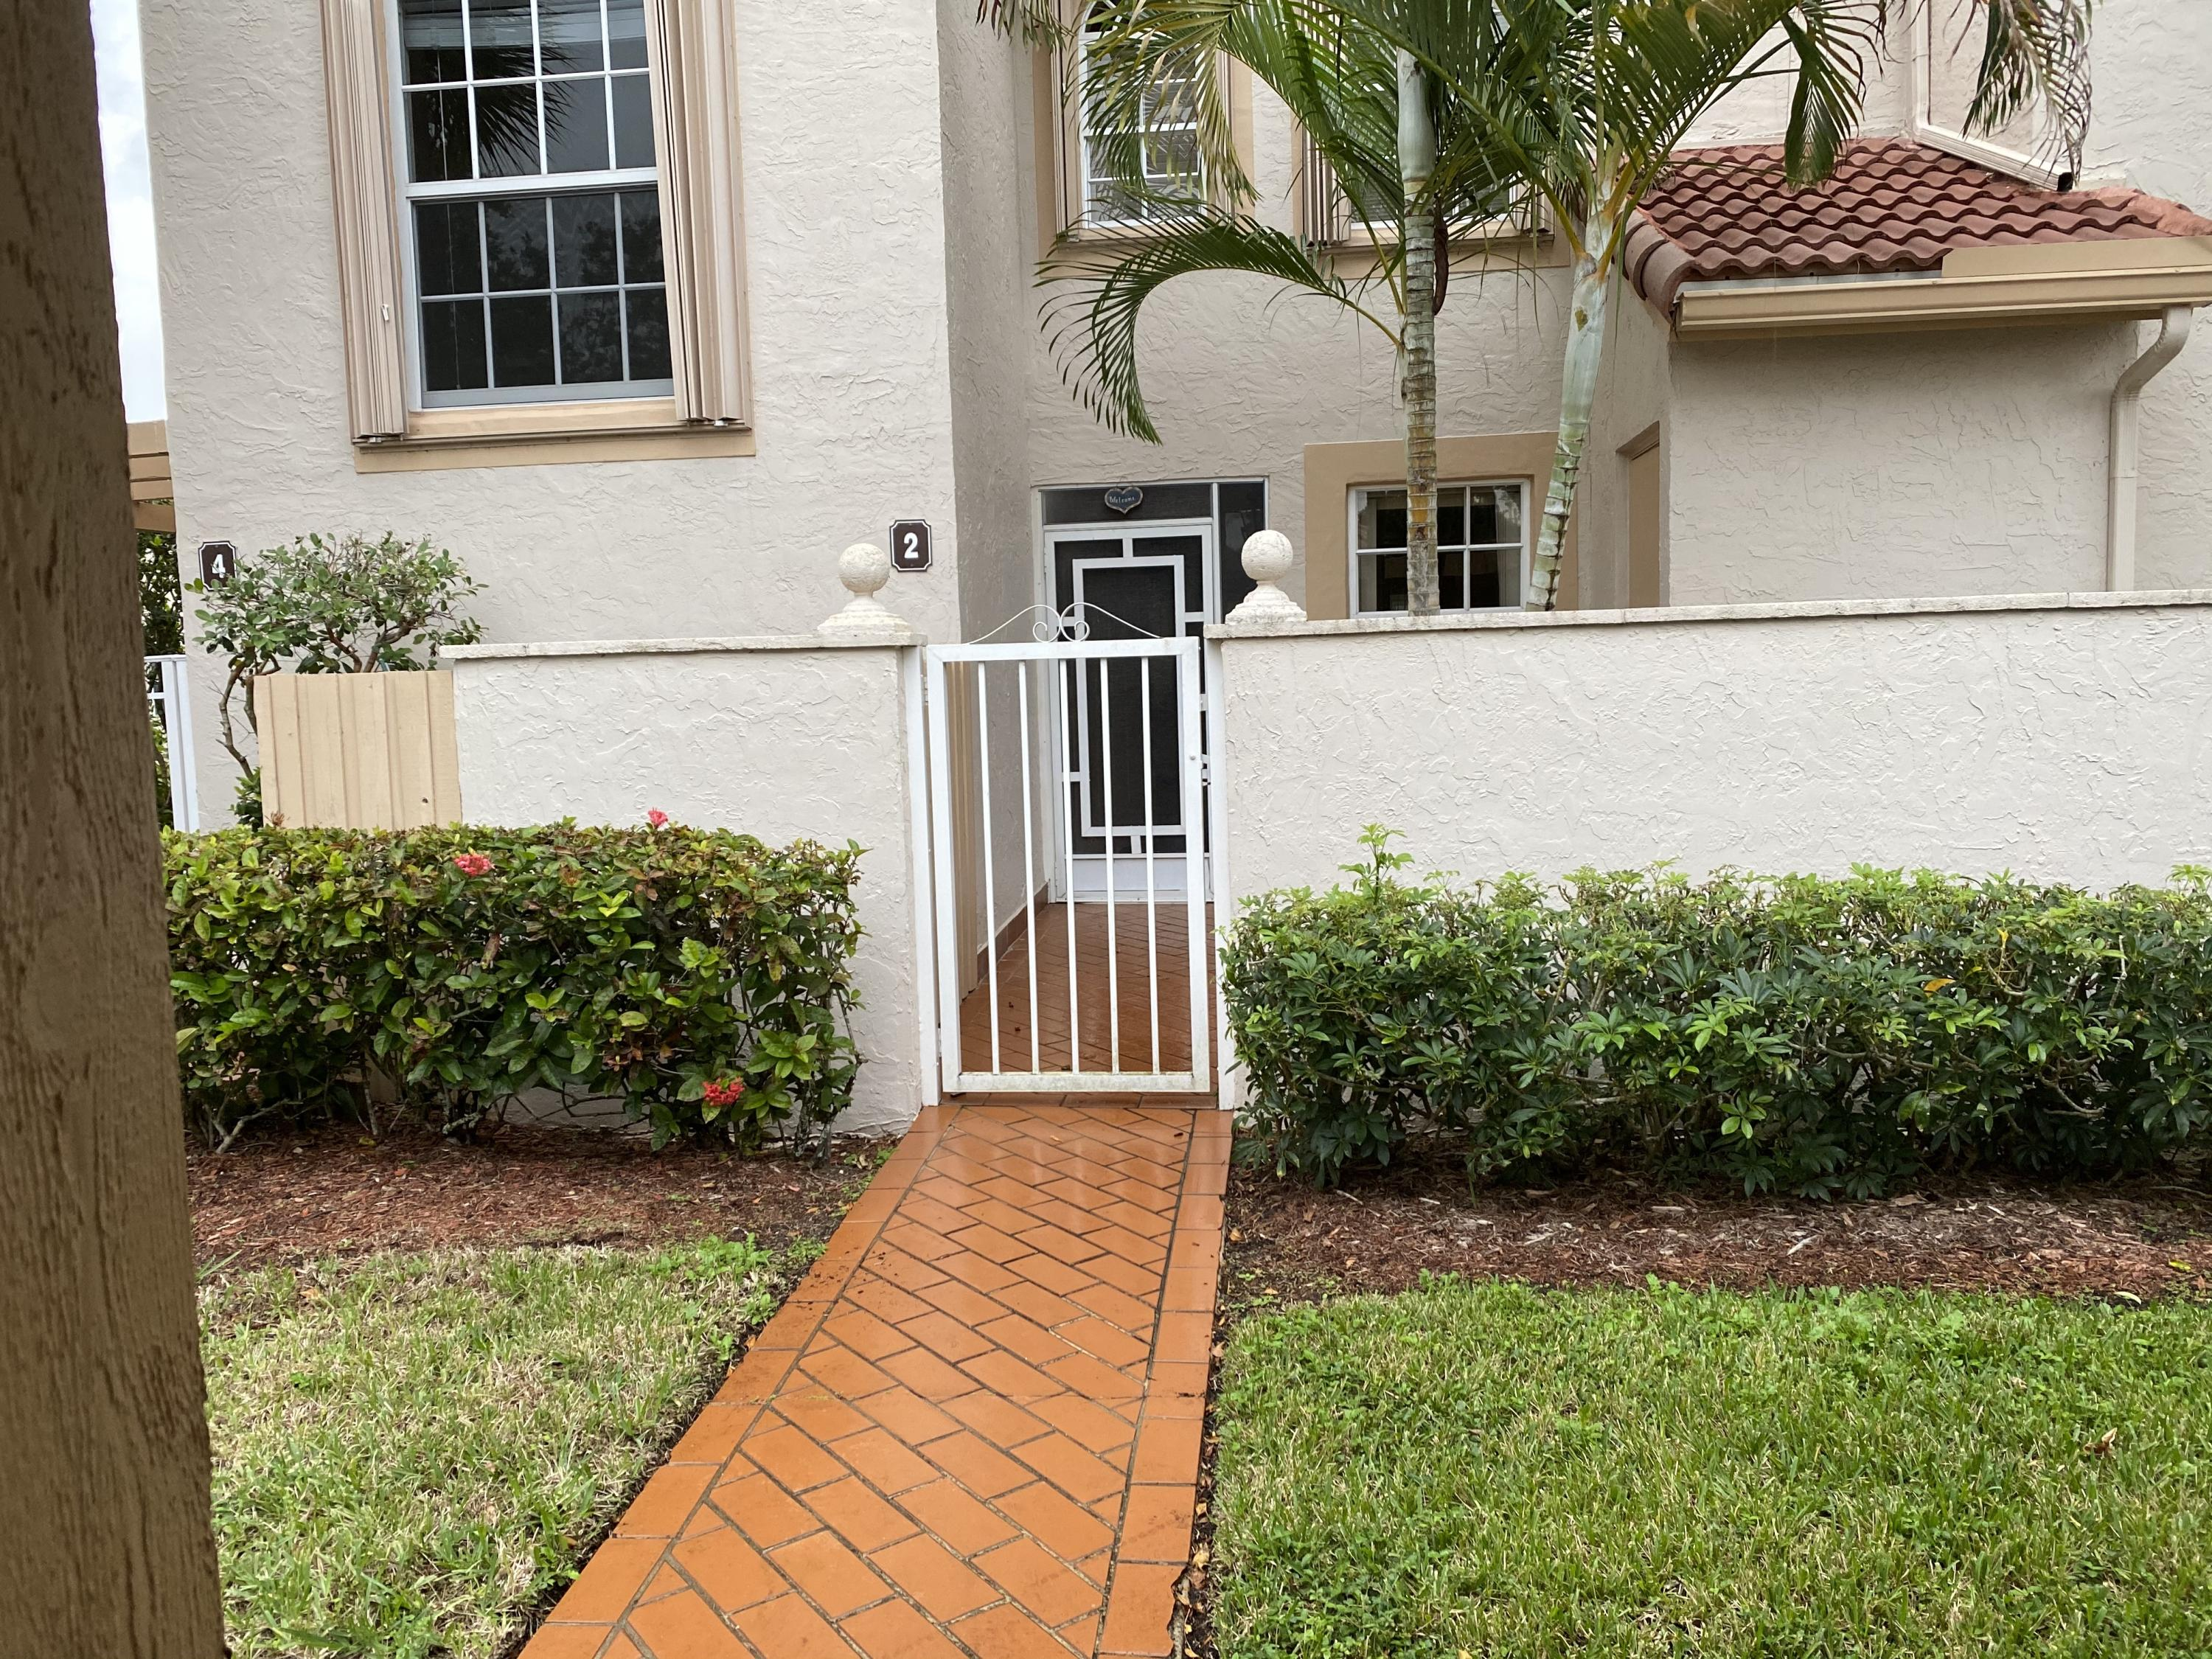 14340 Emerald Lake Drive 2 Delray Beach, FL 33446 Delray Beach FL 33446